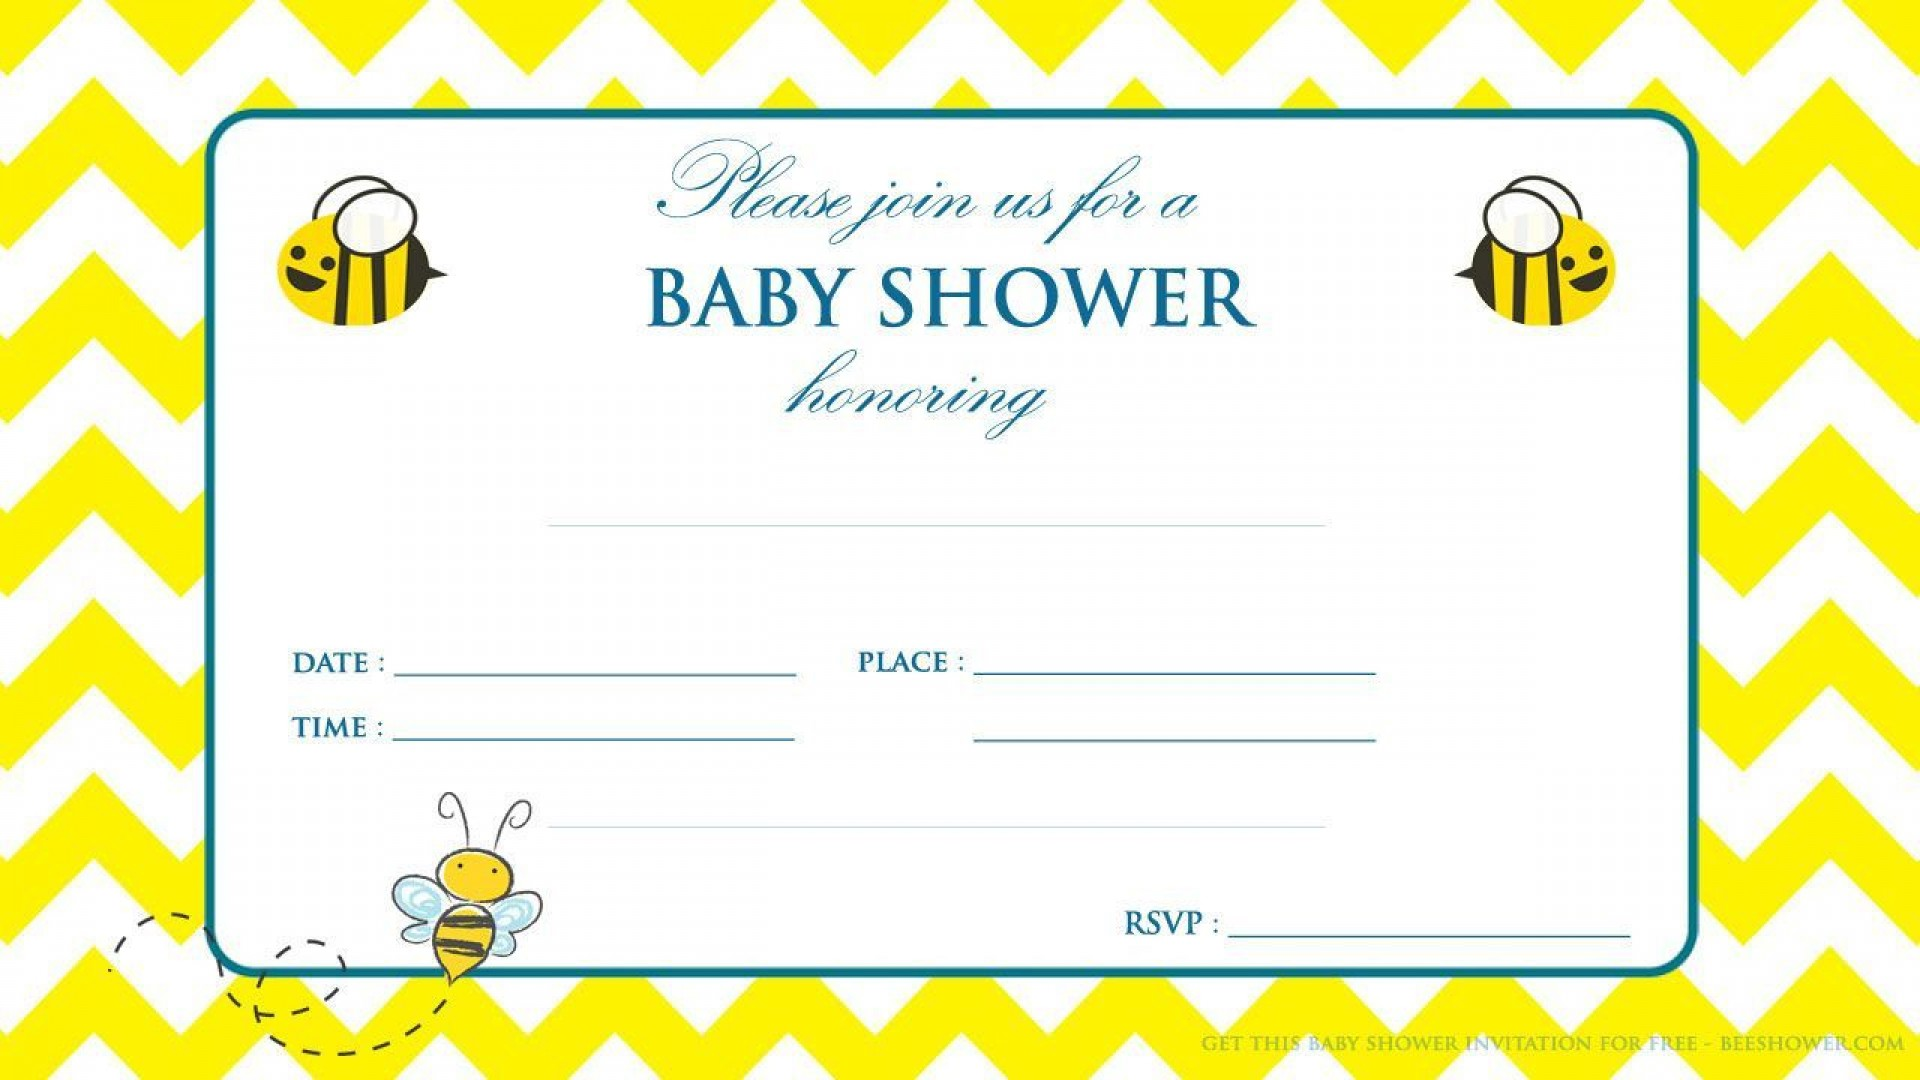 001 Top Baby Shower Invite Template Word Idea  Work Invitation Wording Sample Format In M Free Microsoft1920